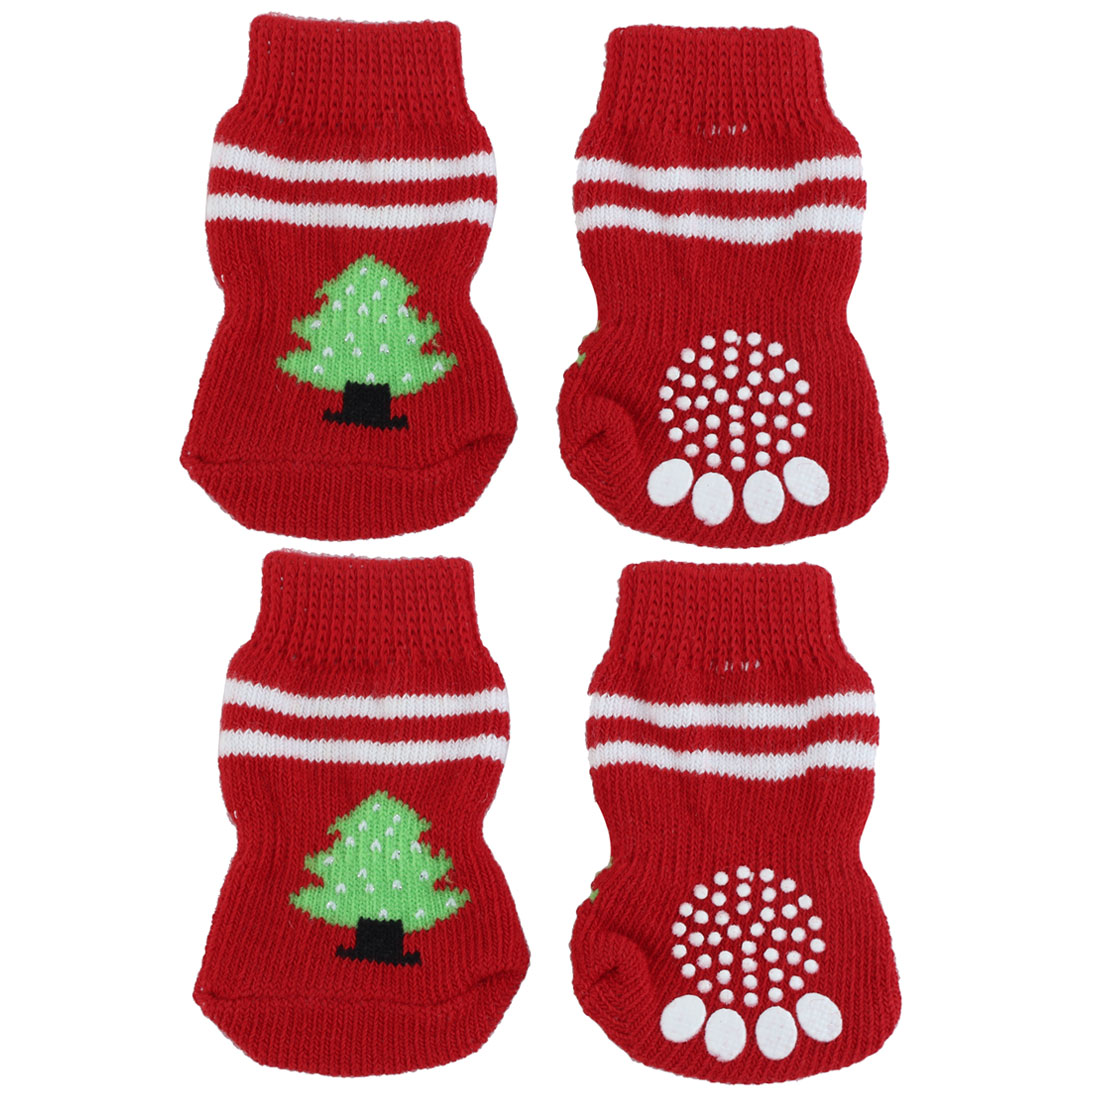 Unique Bargains 4 PCS Red Antislip Winter Bootie Socks for Dog Puppy